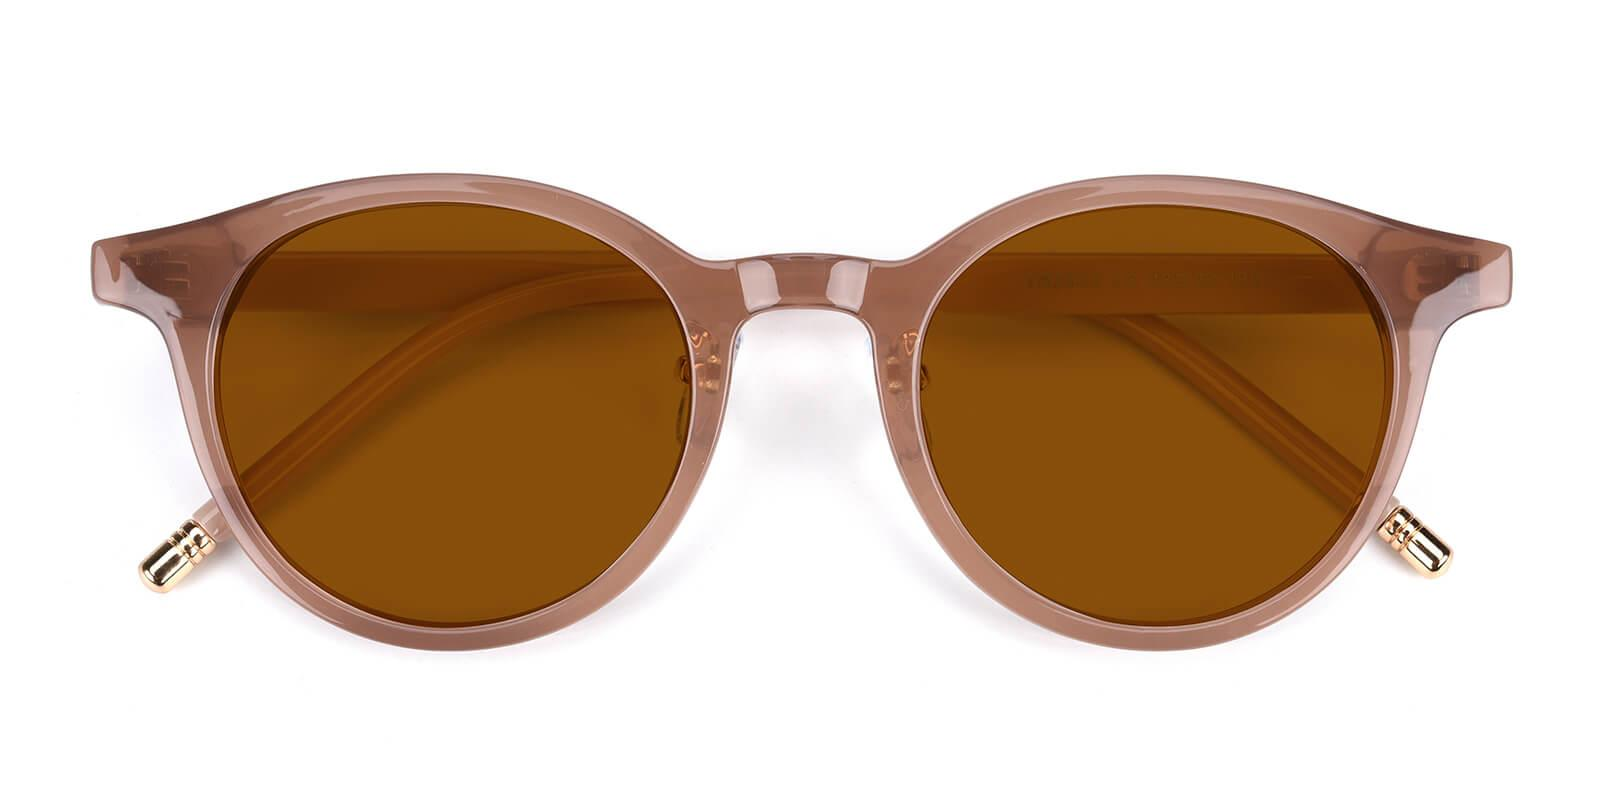 Chiny-Multicolor-Round / Cat-TR-Sunglasses-detail